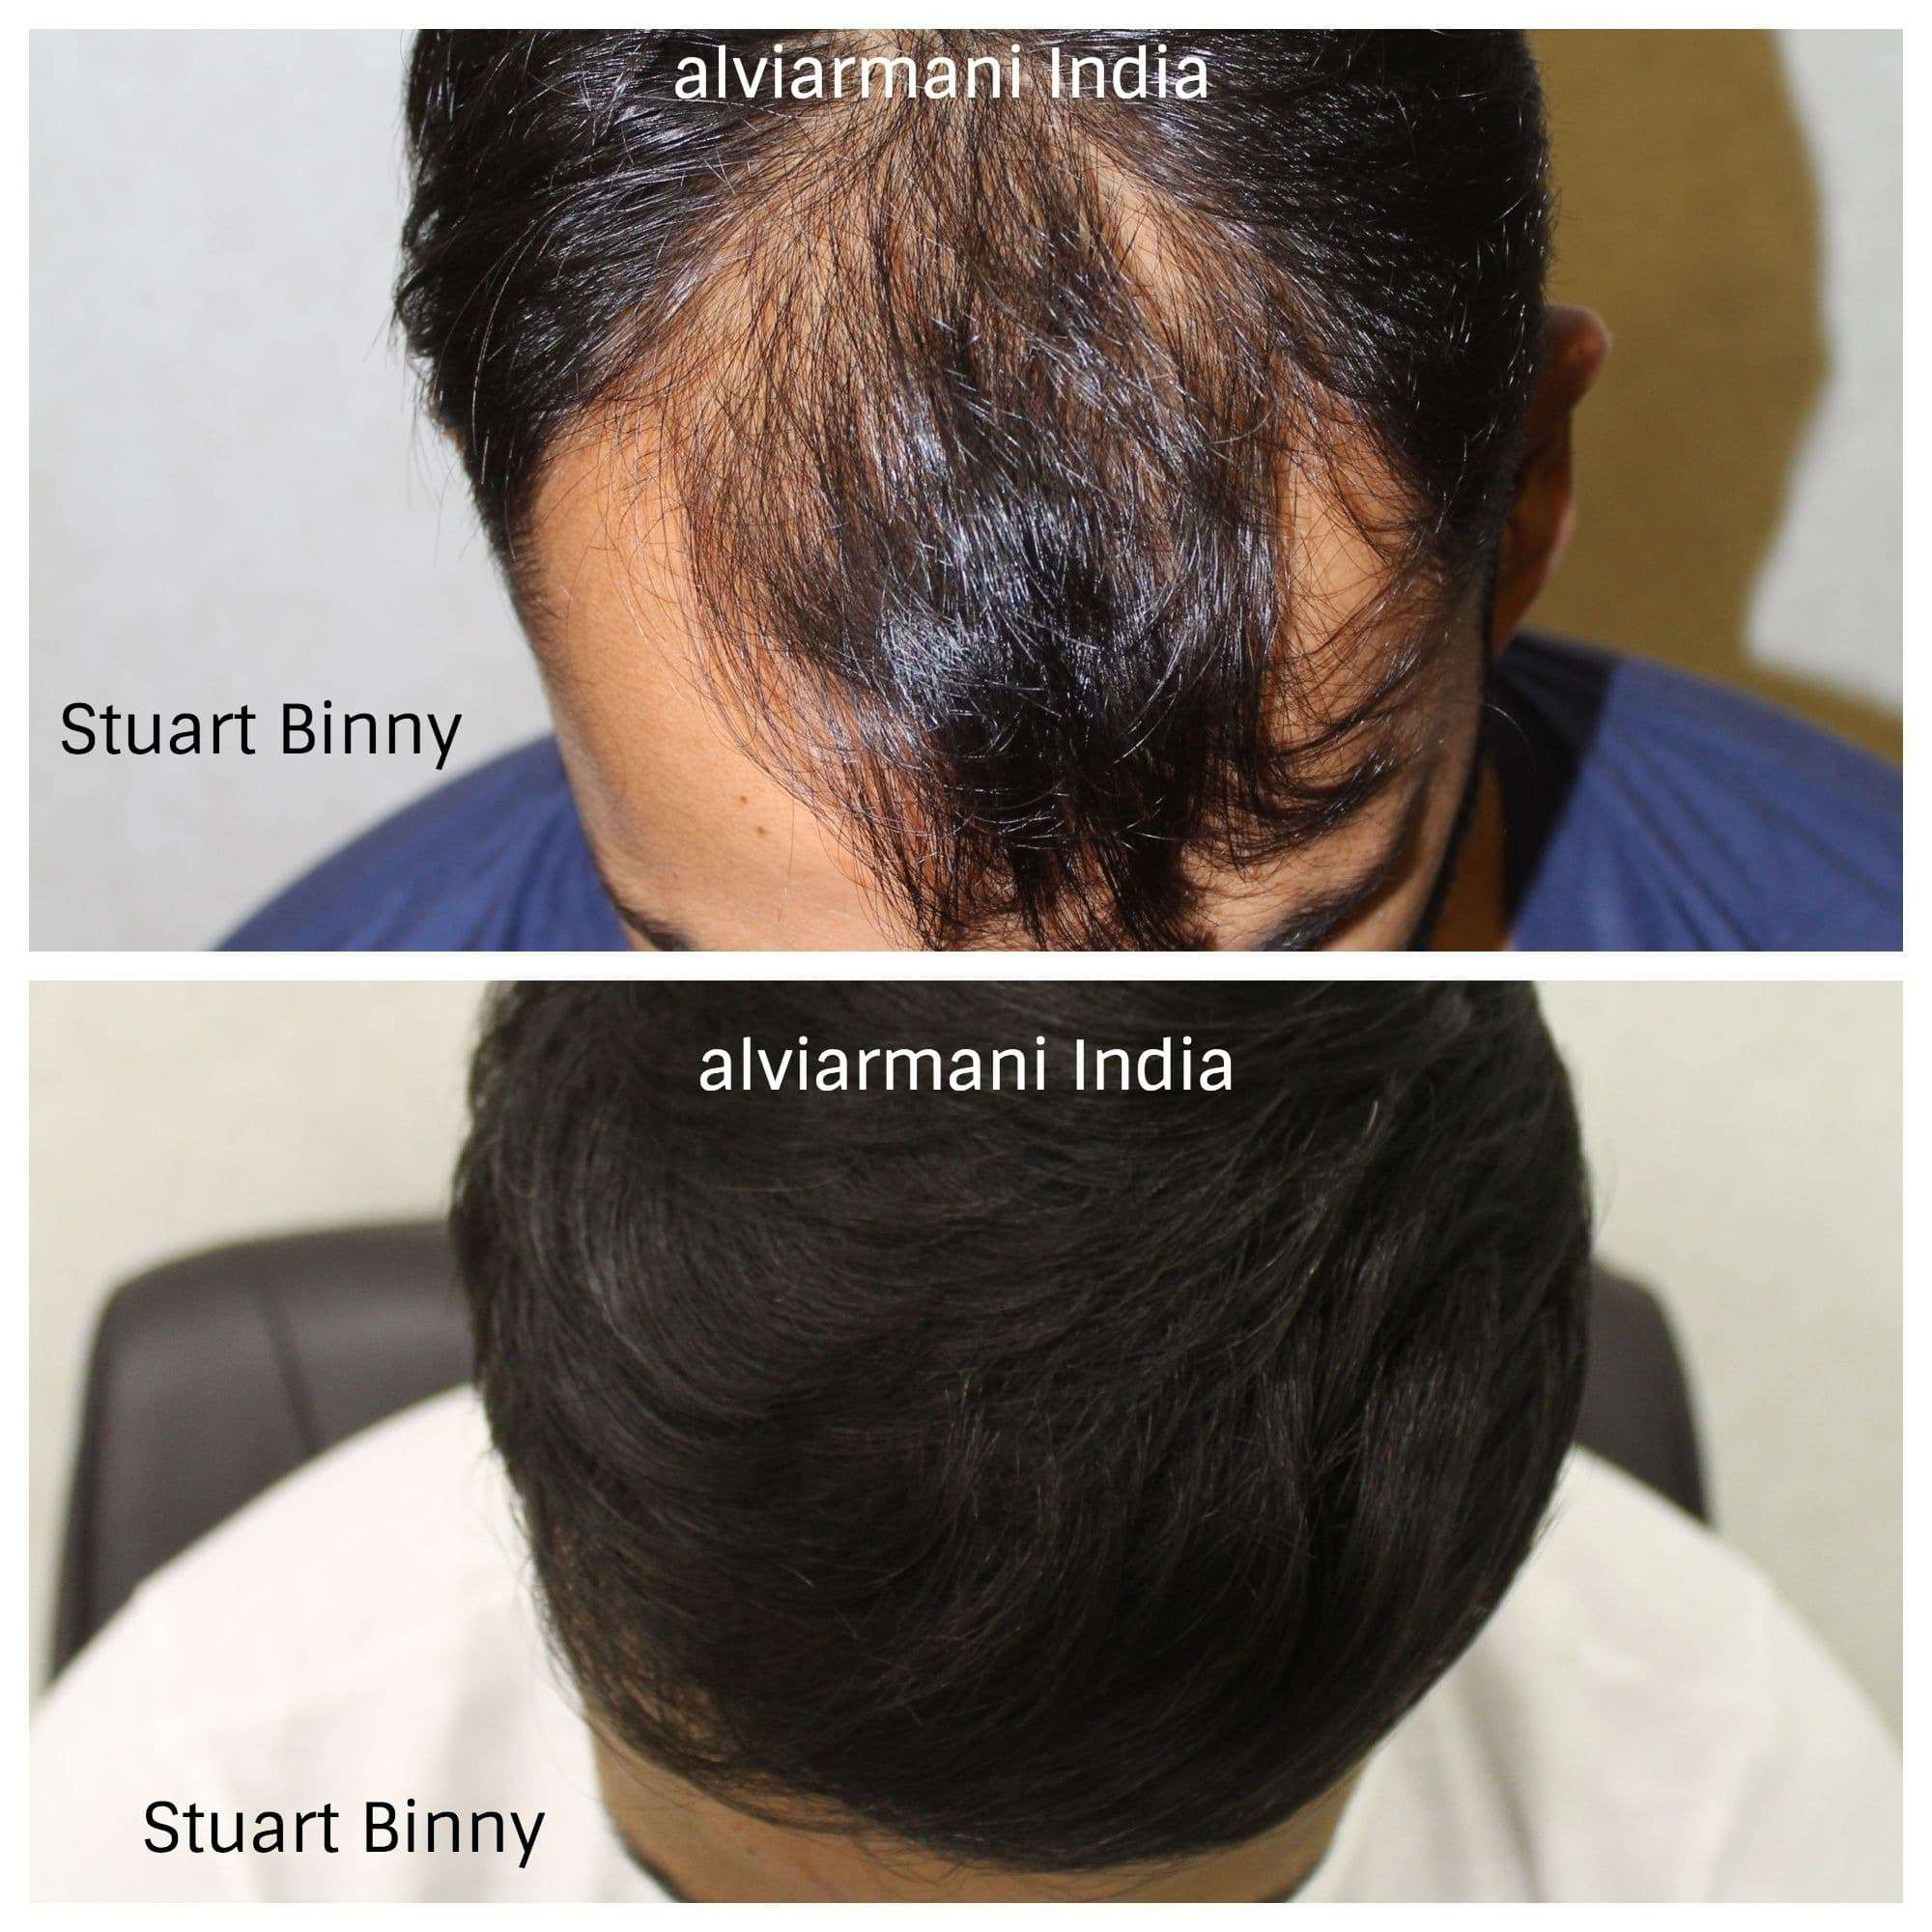 Monaris Hair Transplant's -State of the art surgical centre in India and other countries